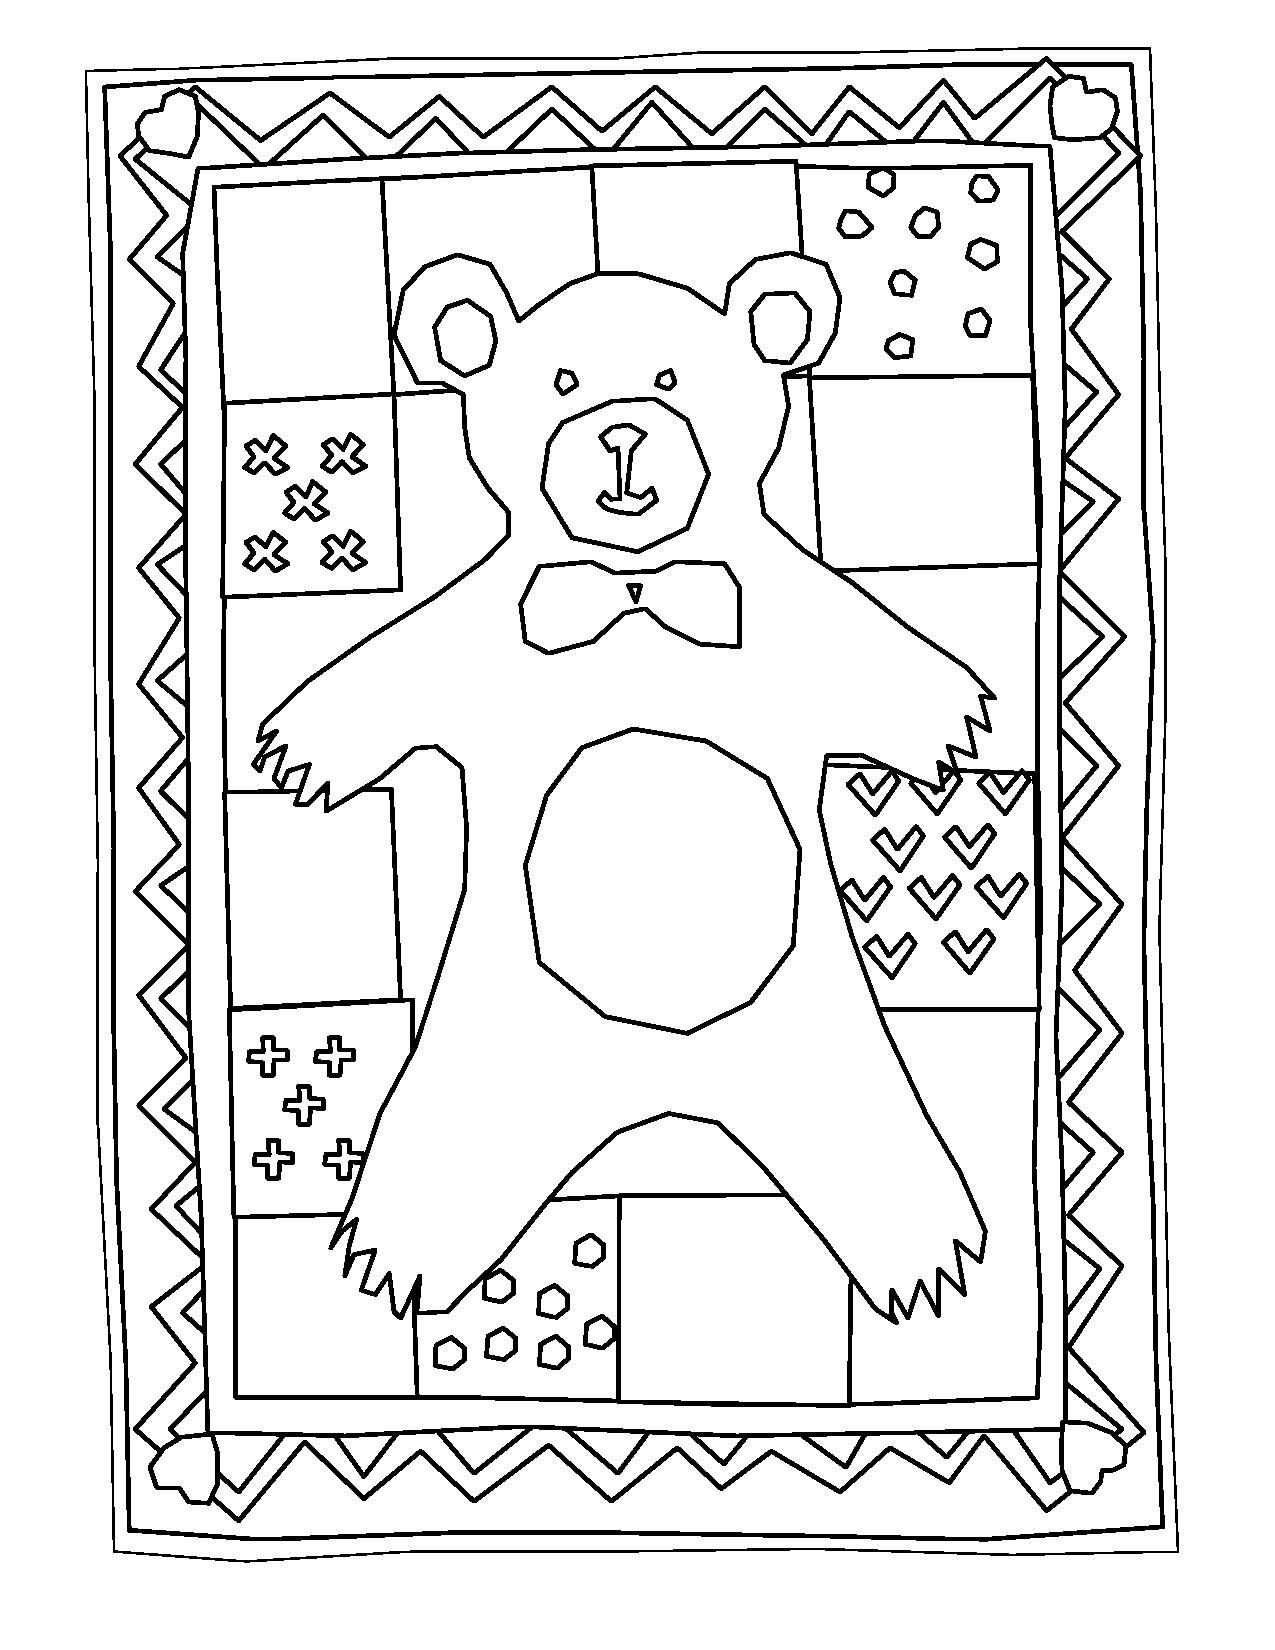 Teddy Bear Quilt | Bear quilts, Birthday coloring pages ...